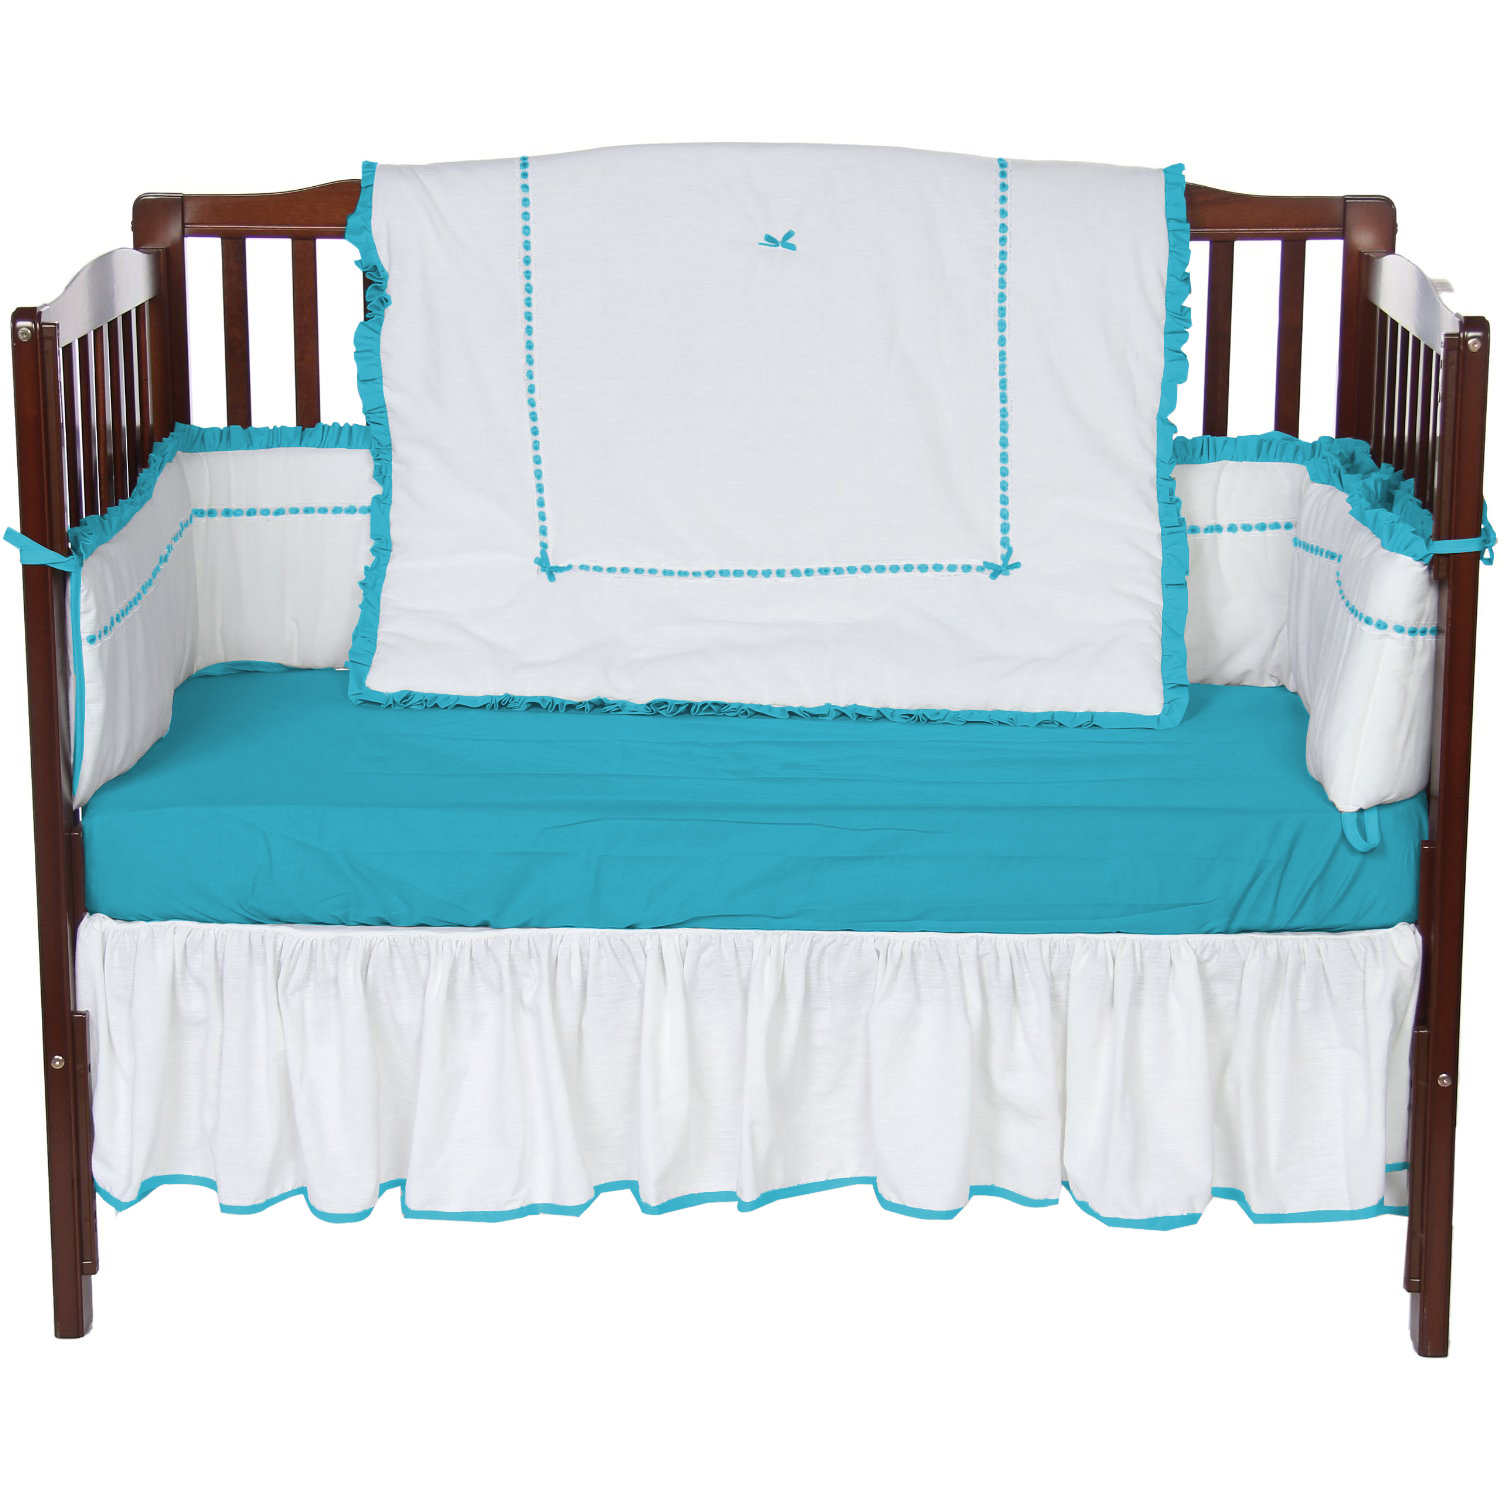 Baby Doll Bedding Unique 4 Piece Crib Bedding Set in aqua by Baby Doll Bedding